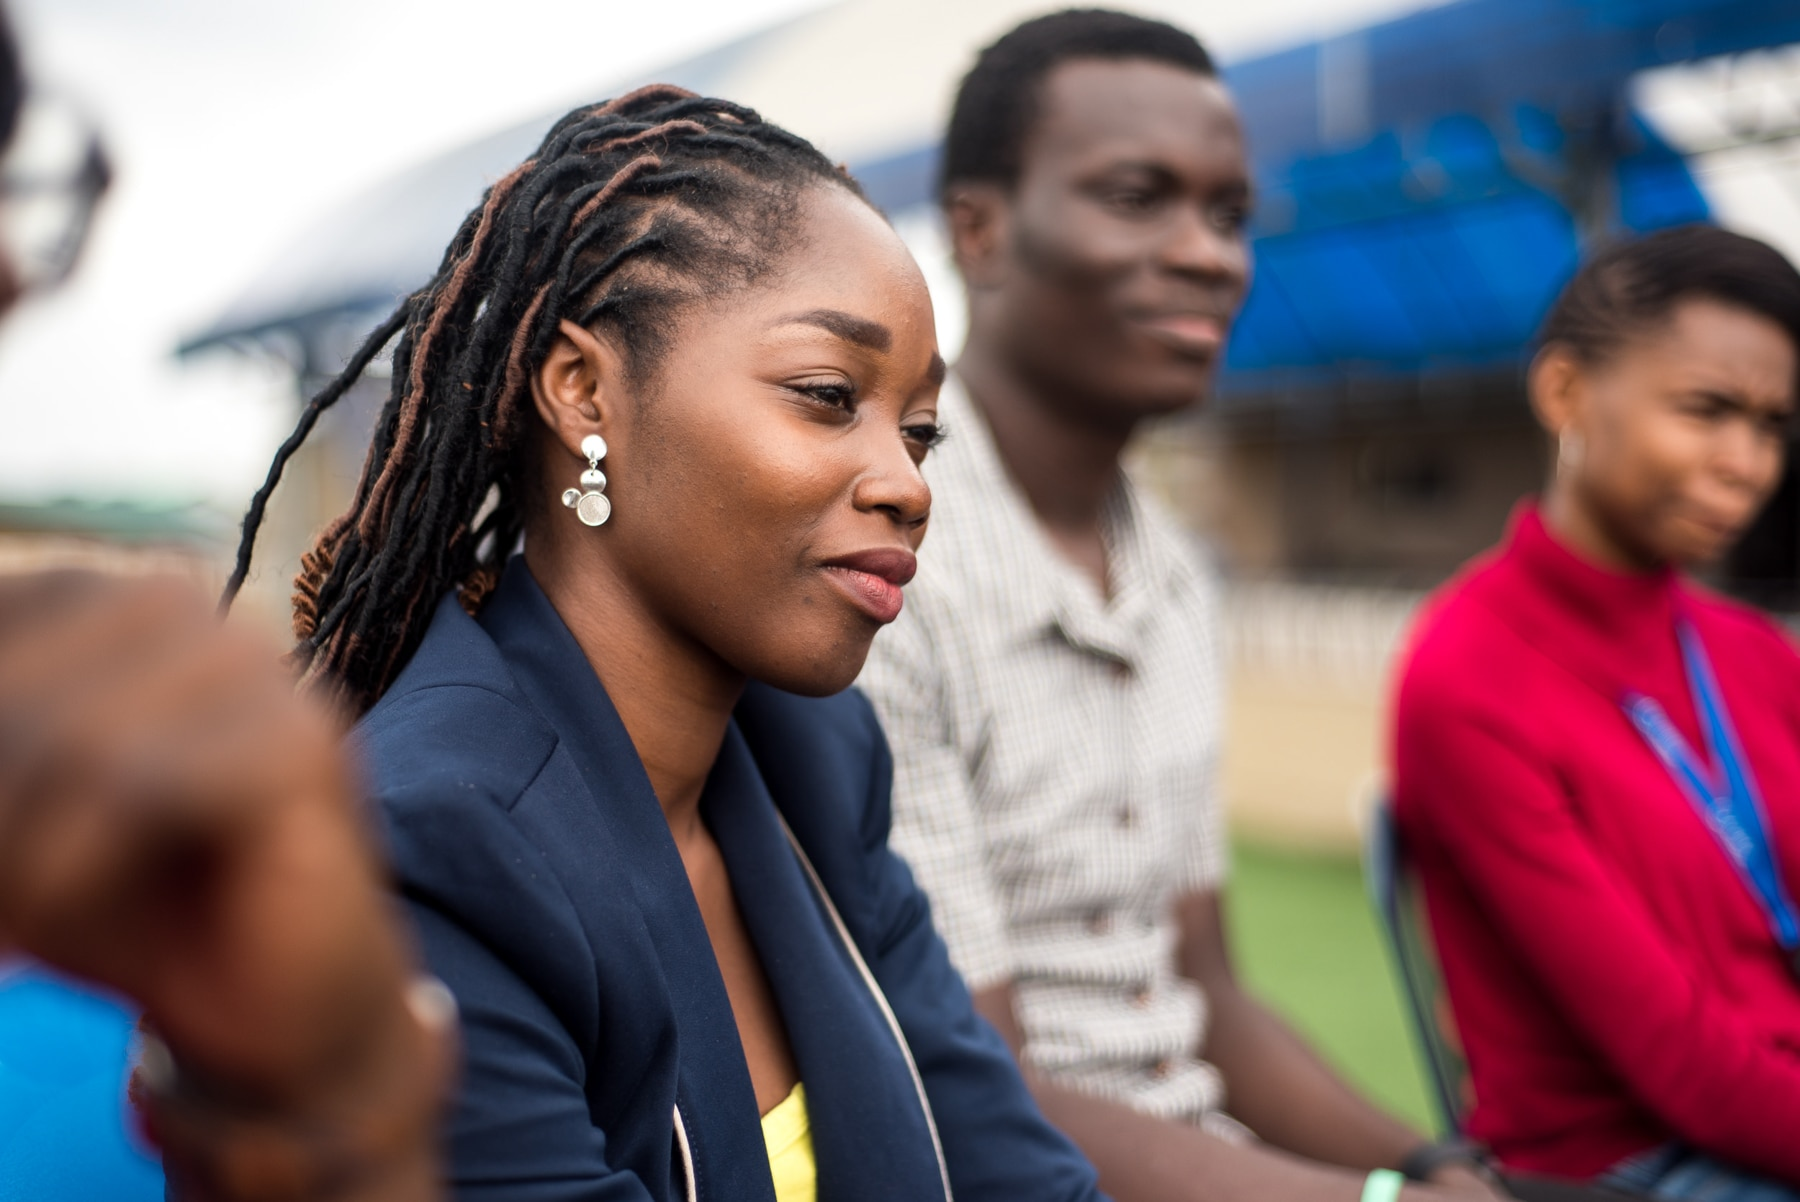 Close-up of woman sitting with others (Courtesy of Andela)